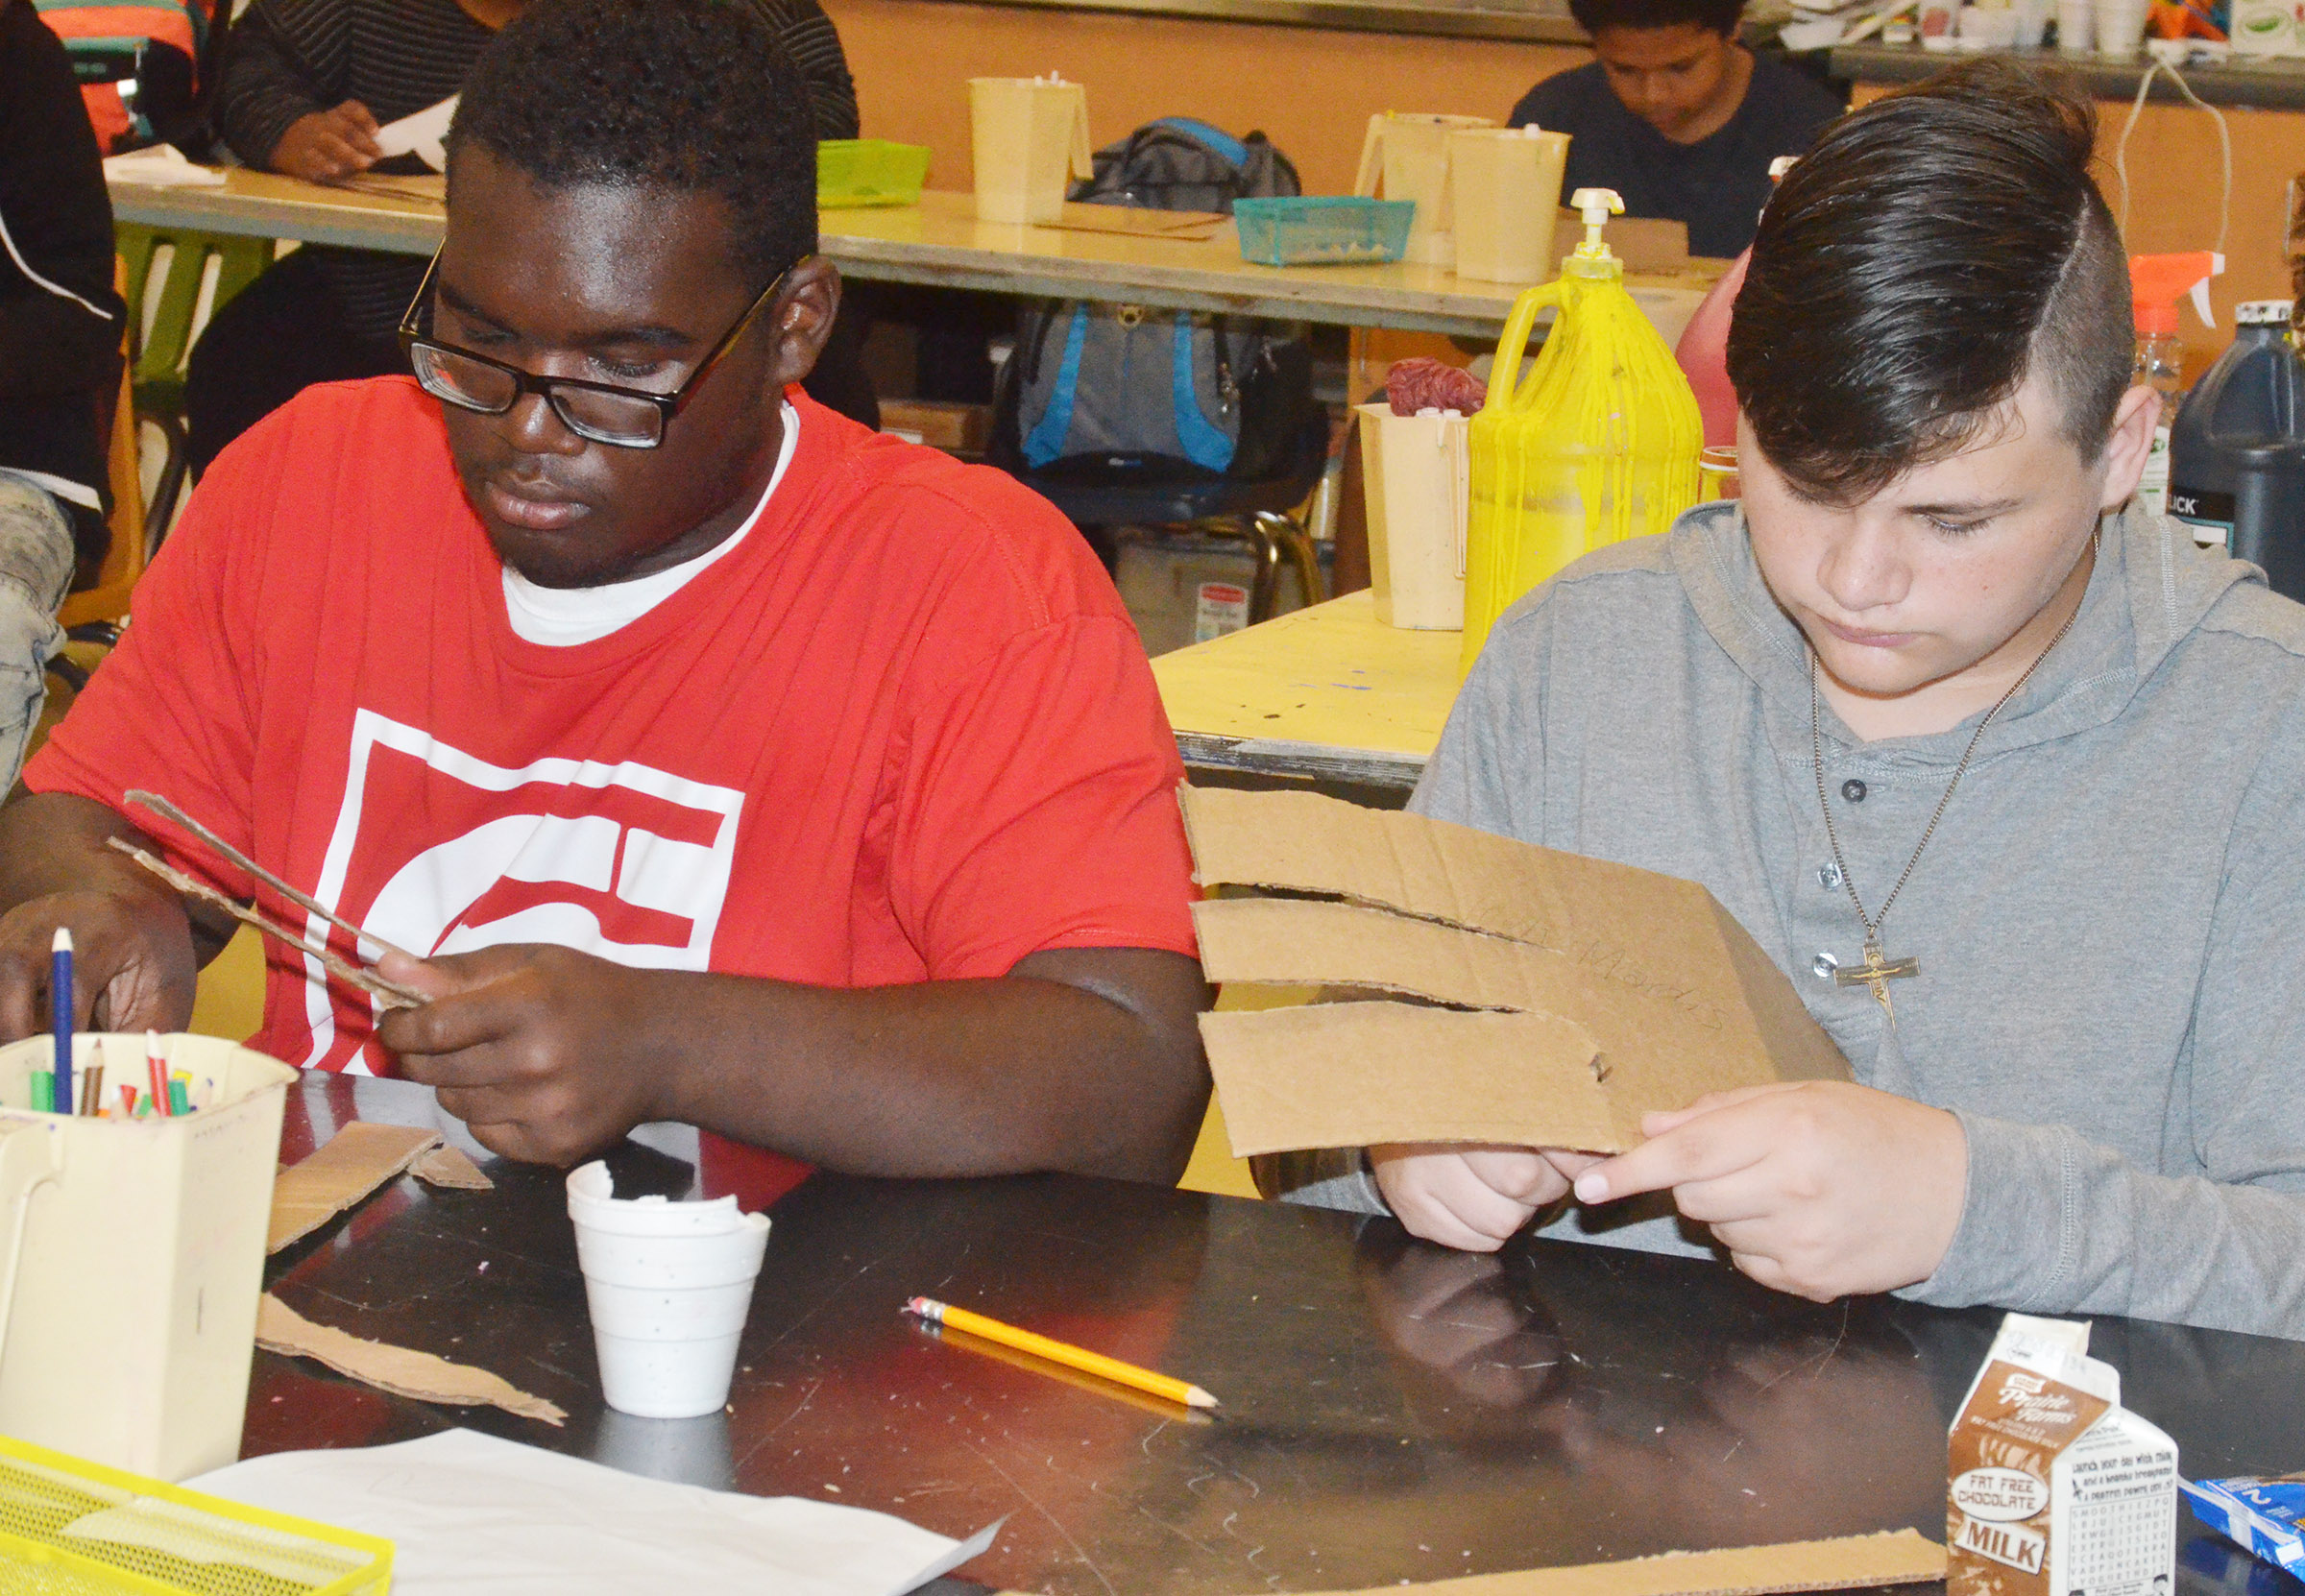 CHS sophomores Taekwon McCoy, at left, and Gabriel Gutierrez cut out their letters.